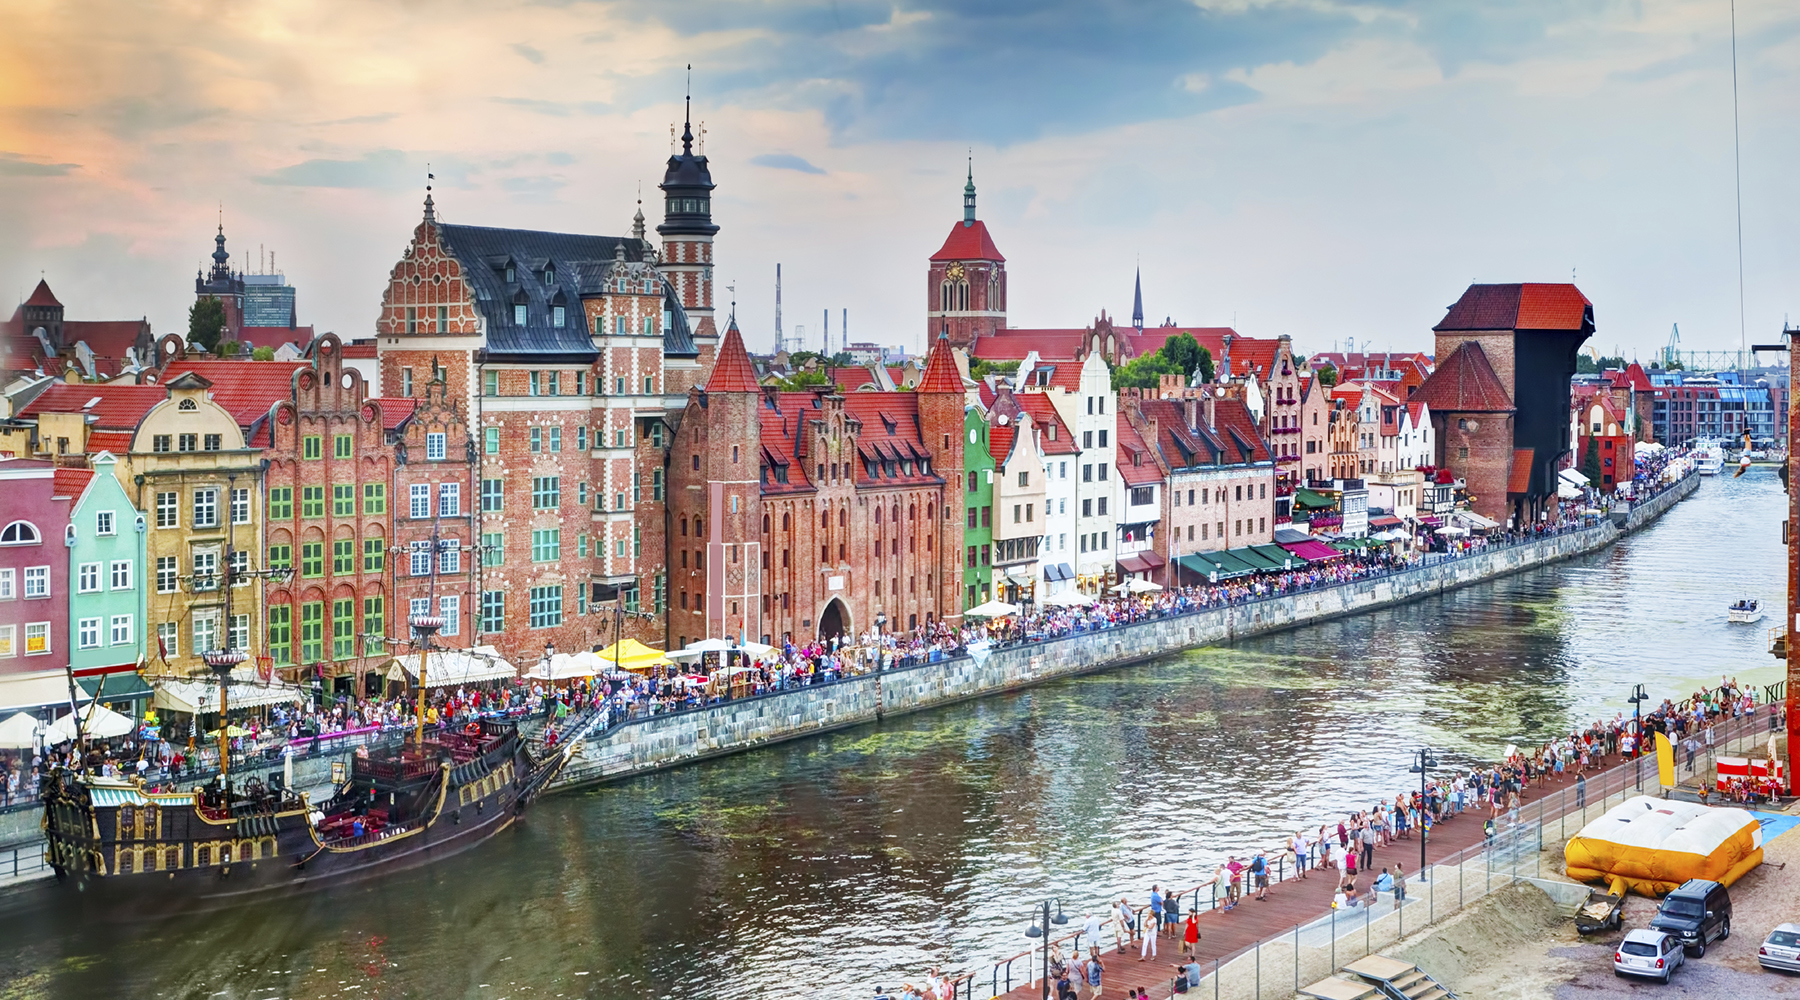 Top view on Gdansk old town and Motlawa river, Poland at sunset.